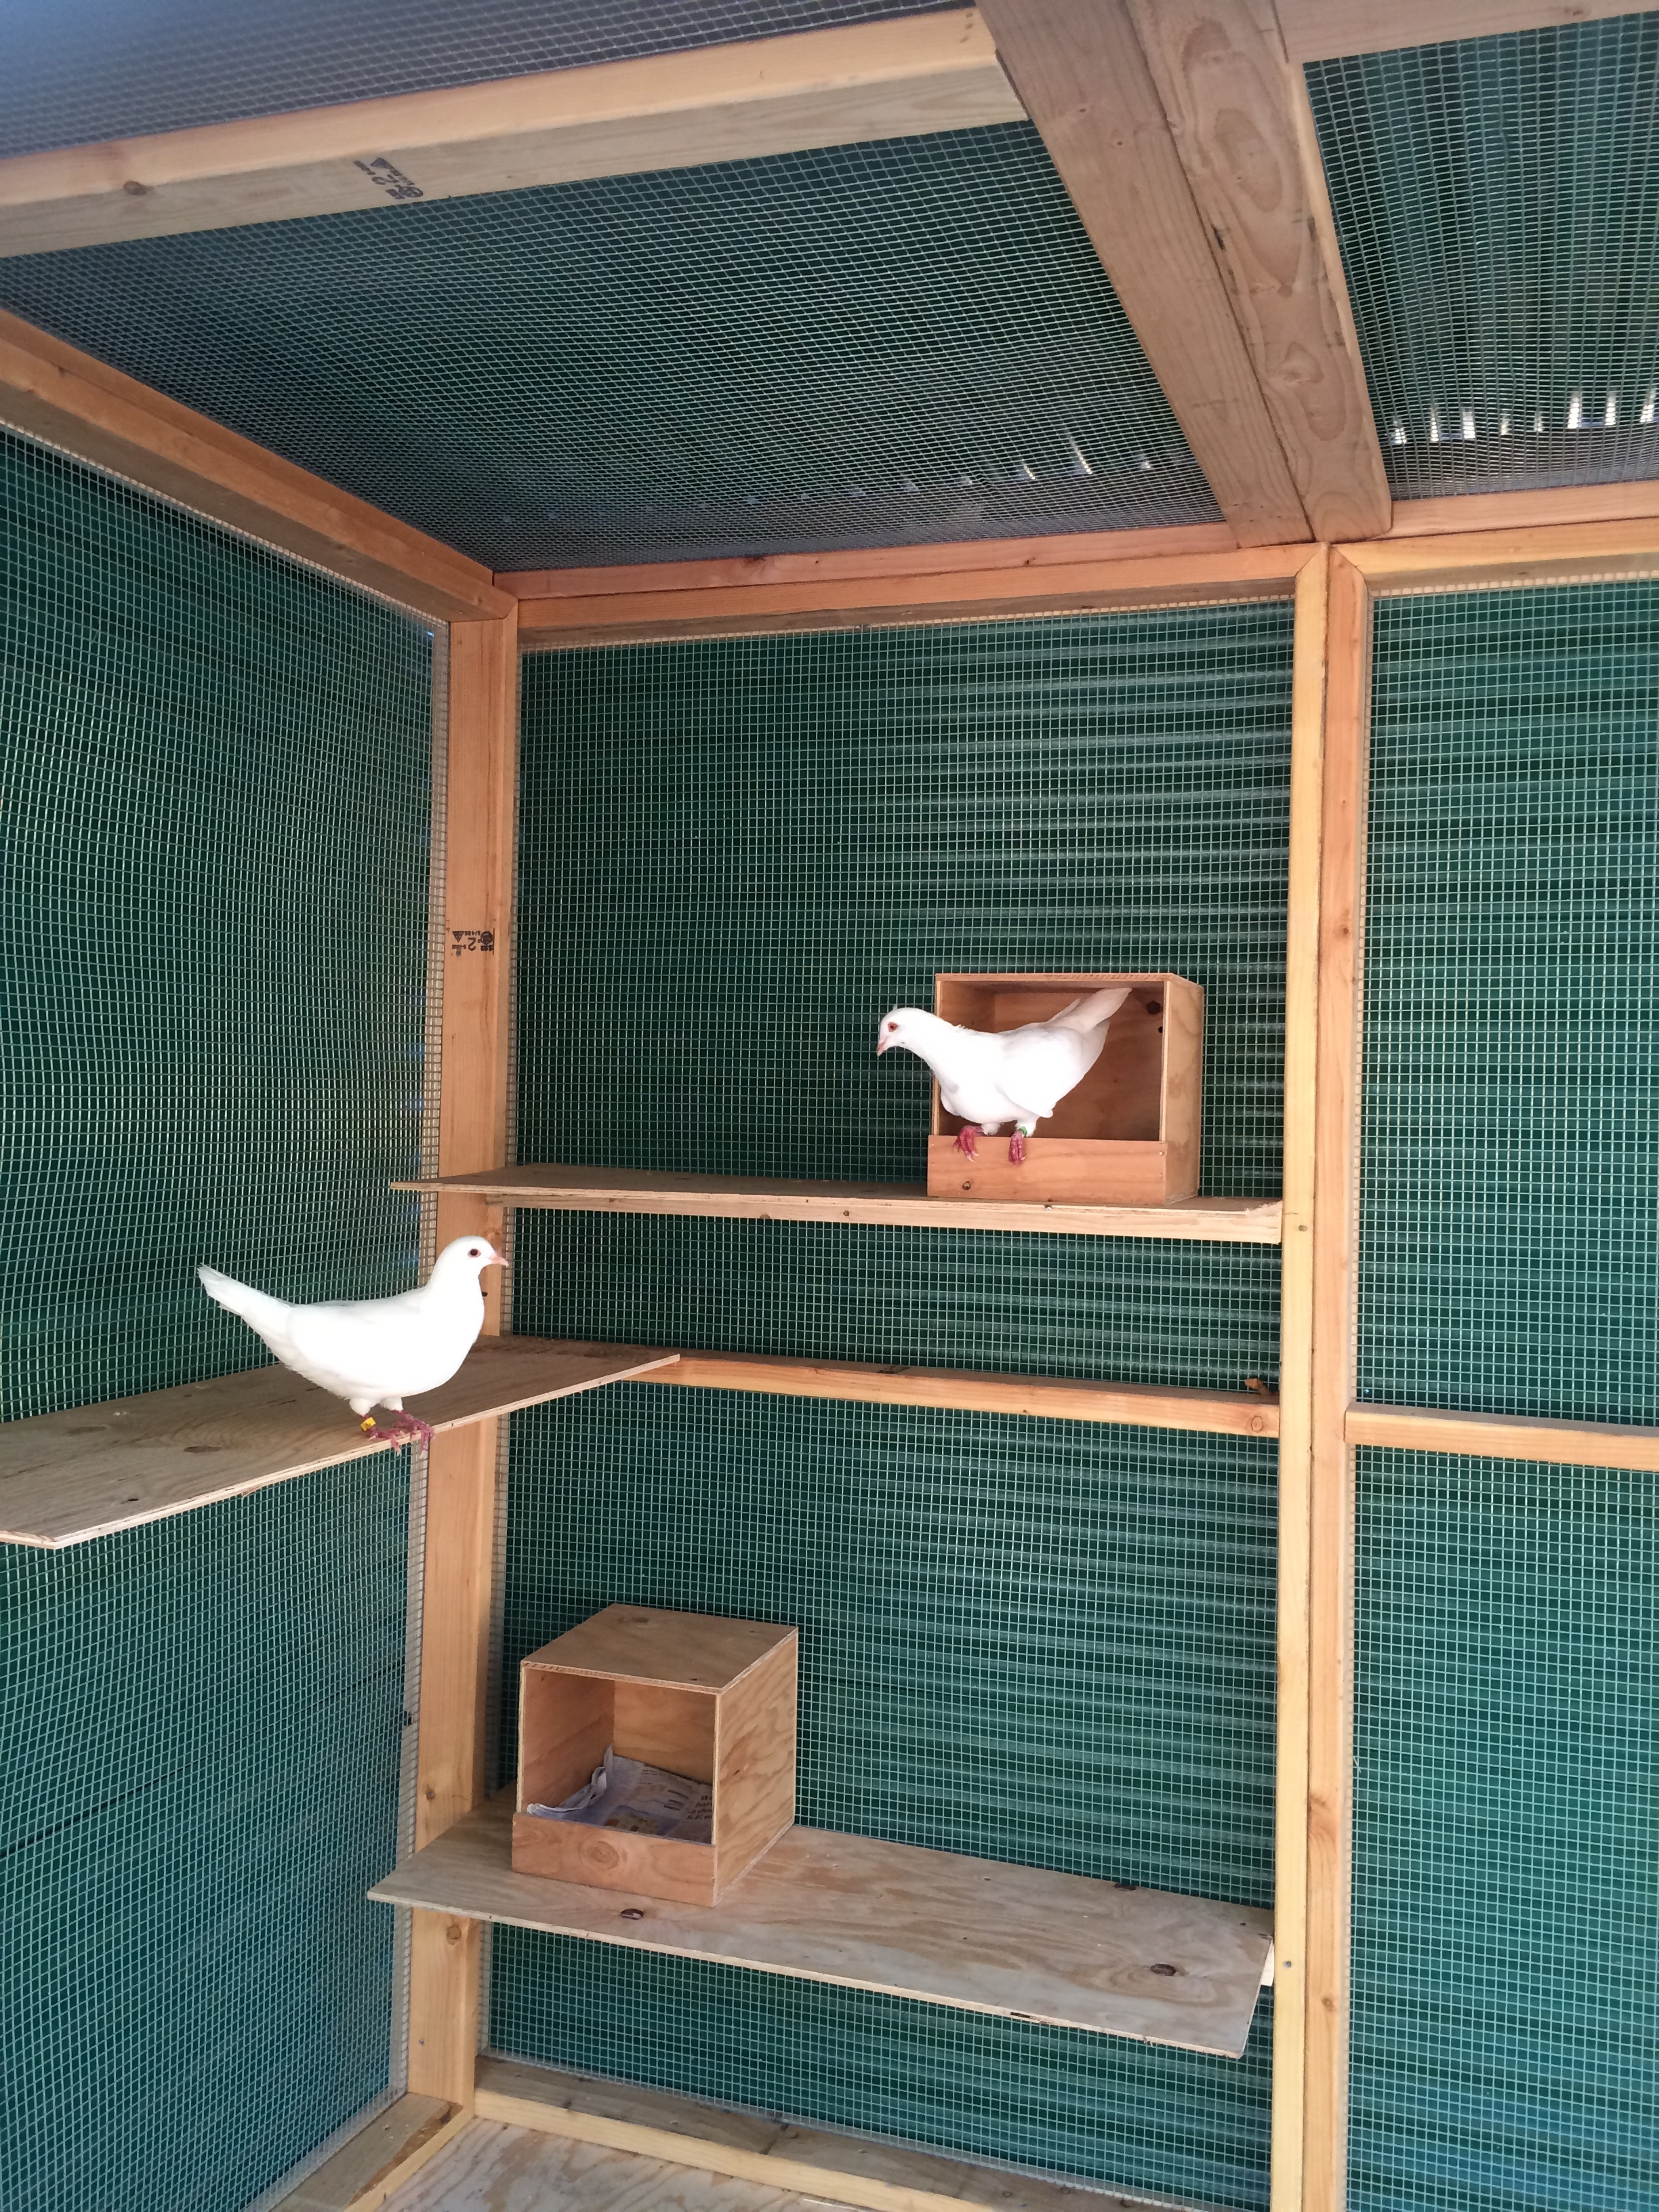 Maya & Boo checking out the nest box area (one pox per couple)